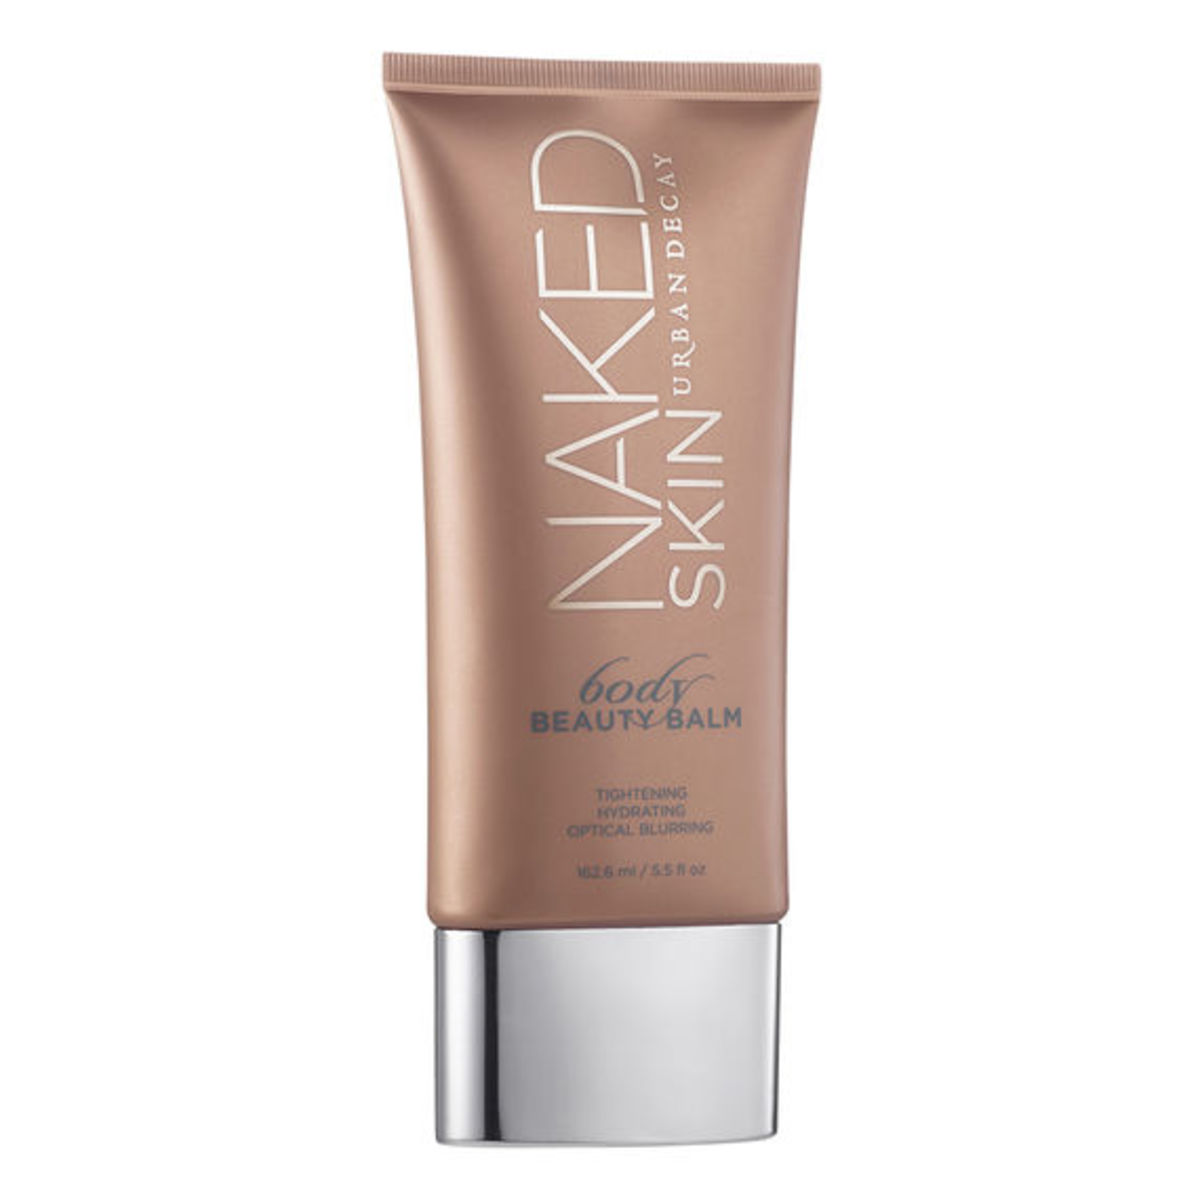 Naked Skin Body Beauty Balm